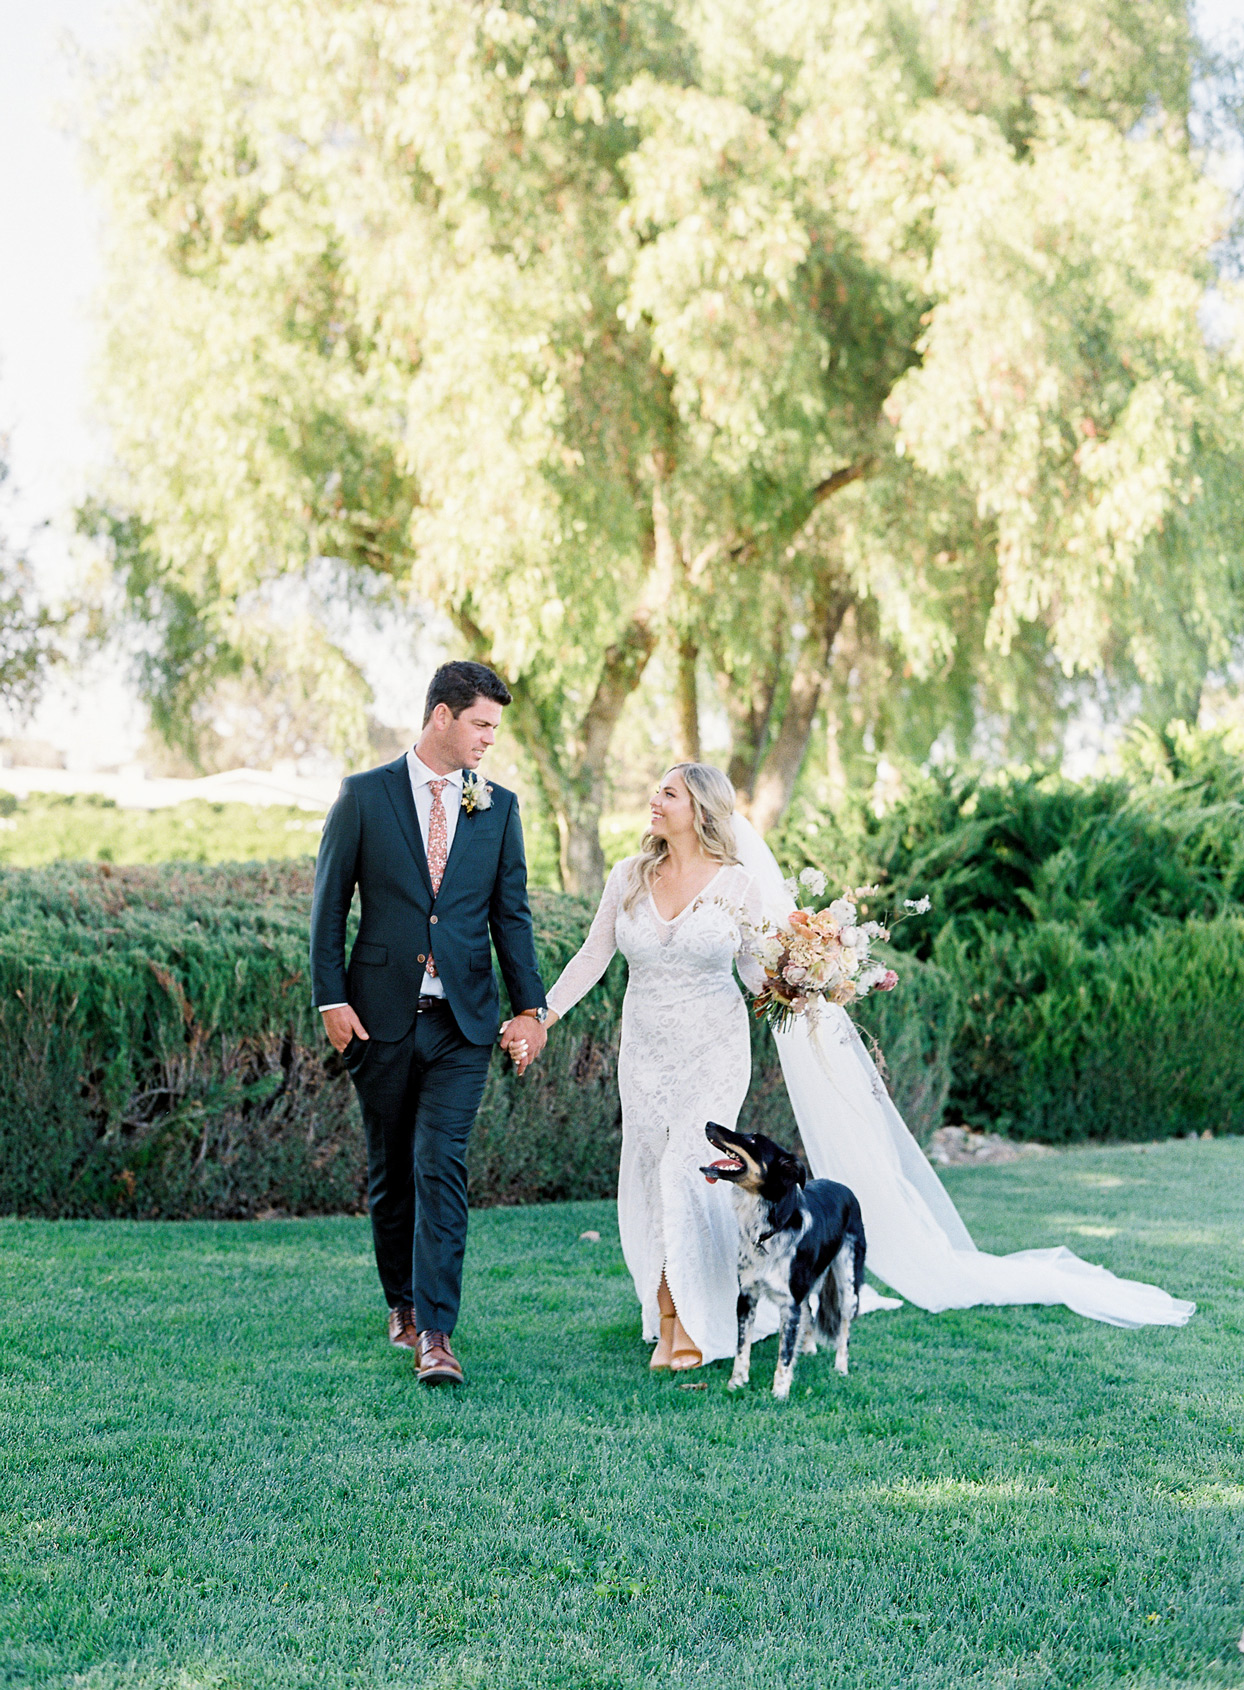 bride and groom walking with dog